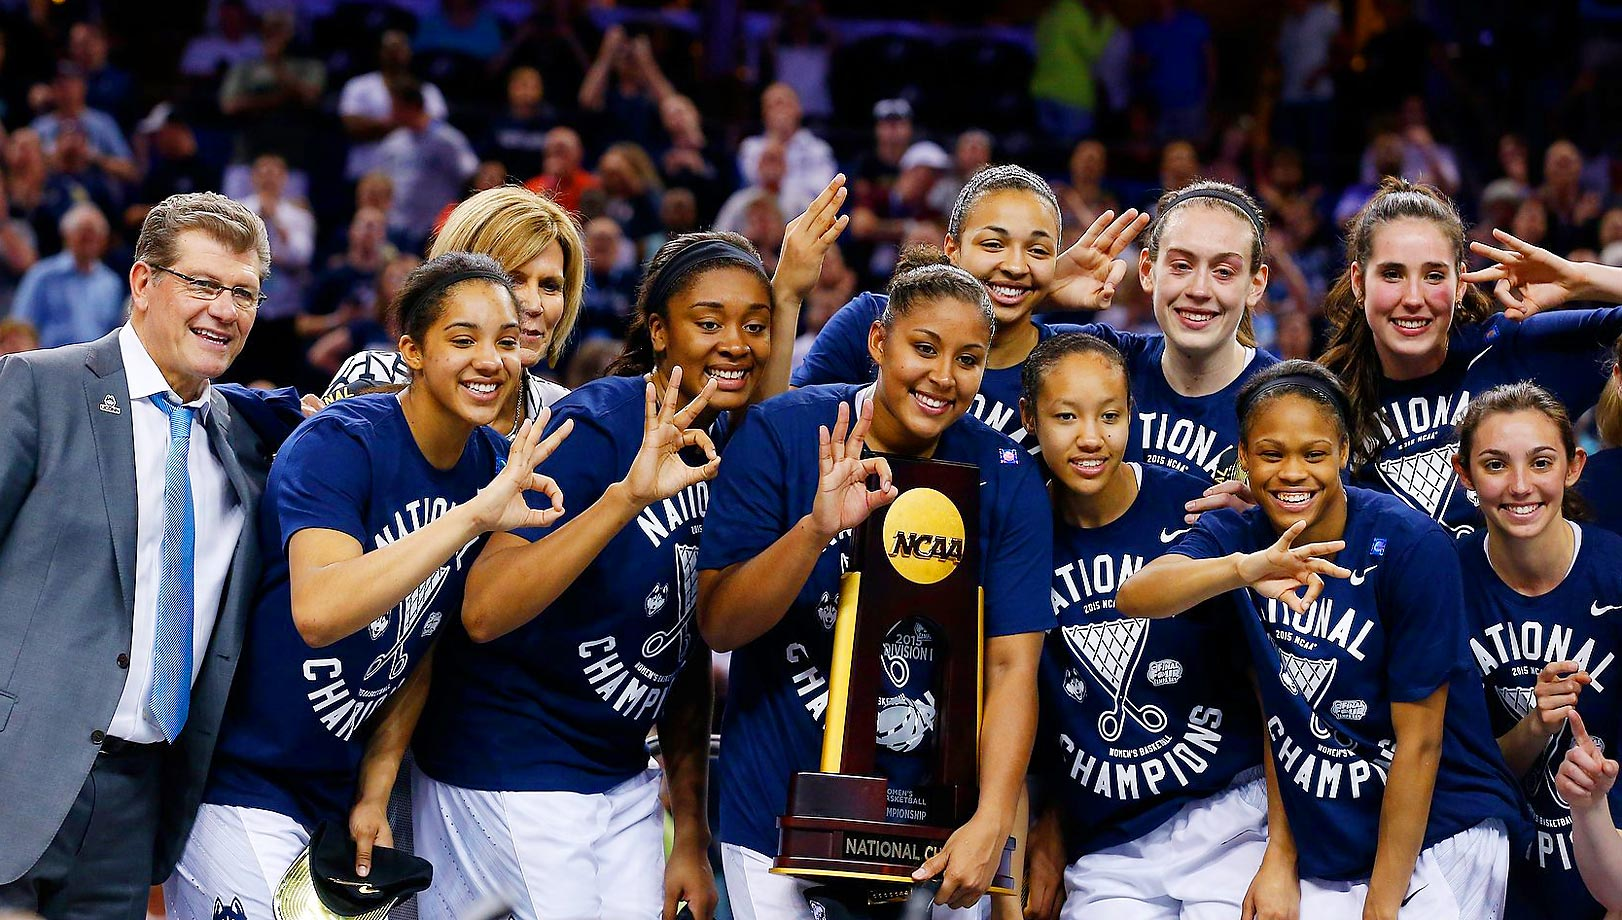 For the third consecutive year and 10th time in 21 years, the Connecticut women, led by coach Geno Auriemma, won the NCAA title. Unlike last year's squad, this Huskies iteration lost a game — just one, to Stanford in November — but UConn ended the season on a 35-game winning streak, which culminated in a 63-53 win over Notre Dame in the championship contest. For her performance during the season, forward Breanna Stewart was named AP Player of the Year, and she won her third straight Final Four Most Outstanding Player award as well. The Huskies have now reached 10 consecutive Final Fours, 15 of the last 16 and 20 of the last 22.                                      (Text credit: Alex Putterman/SI.com)